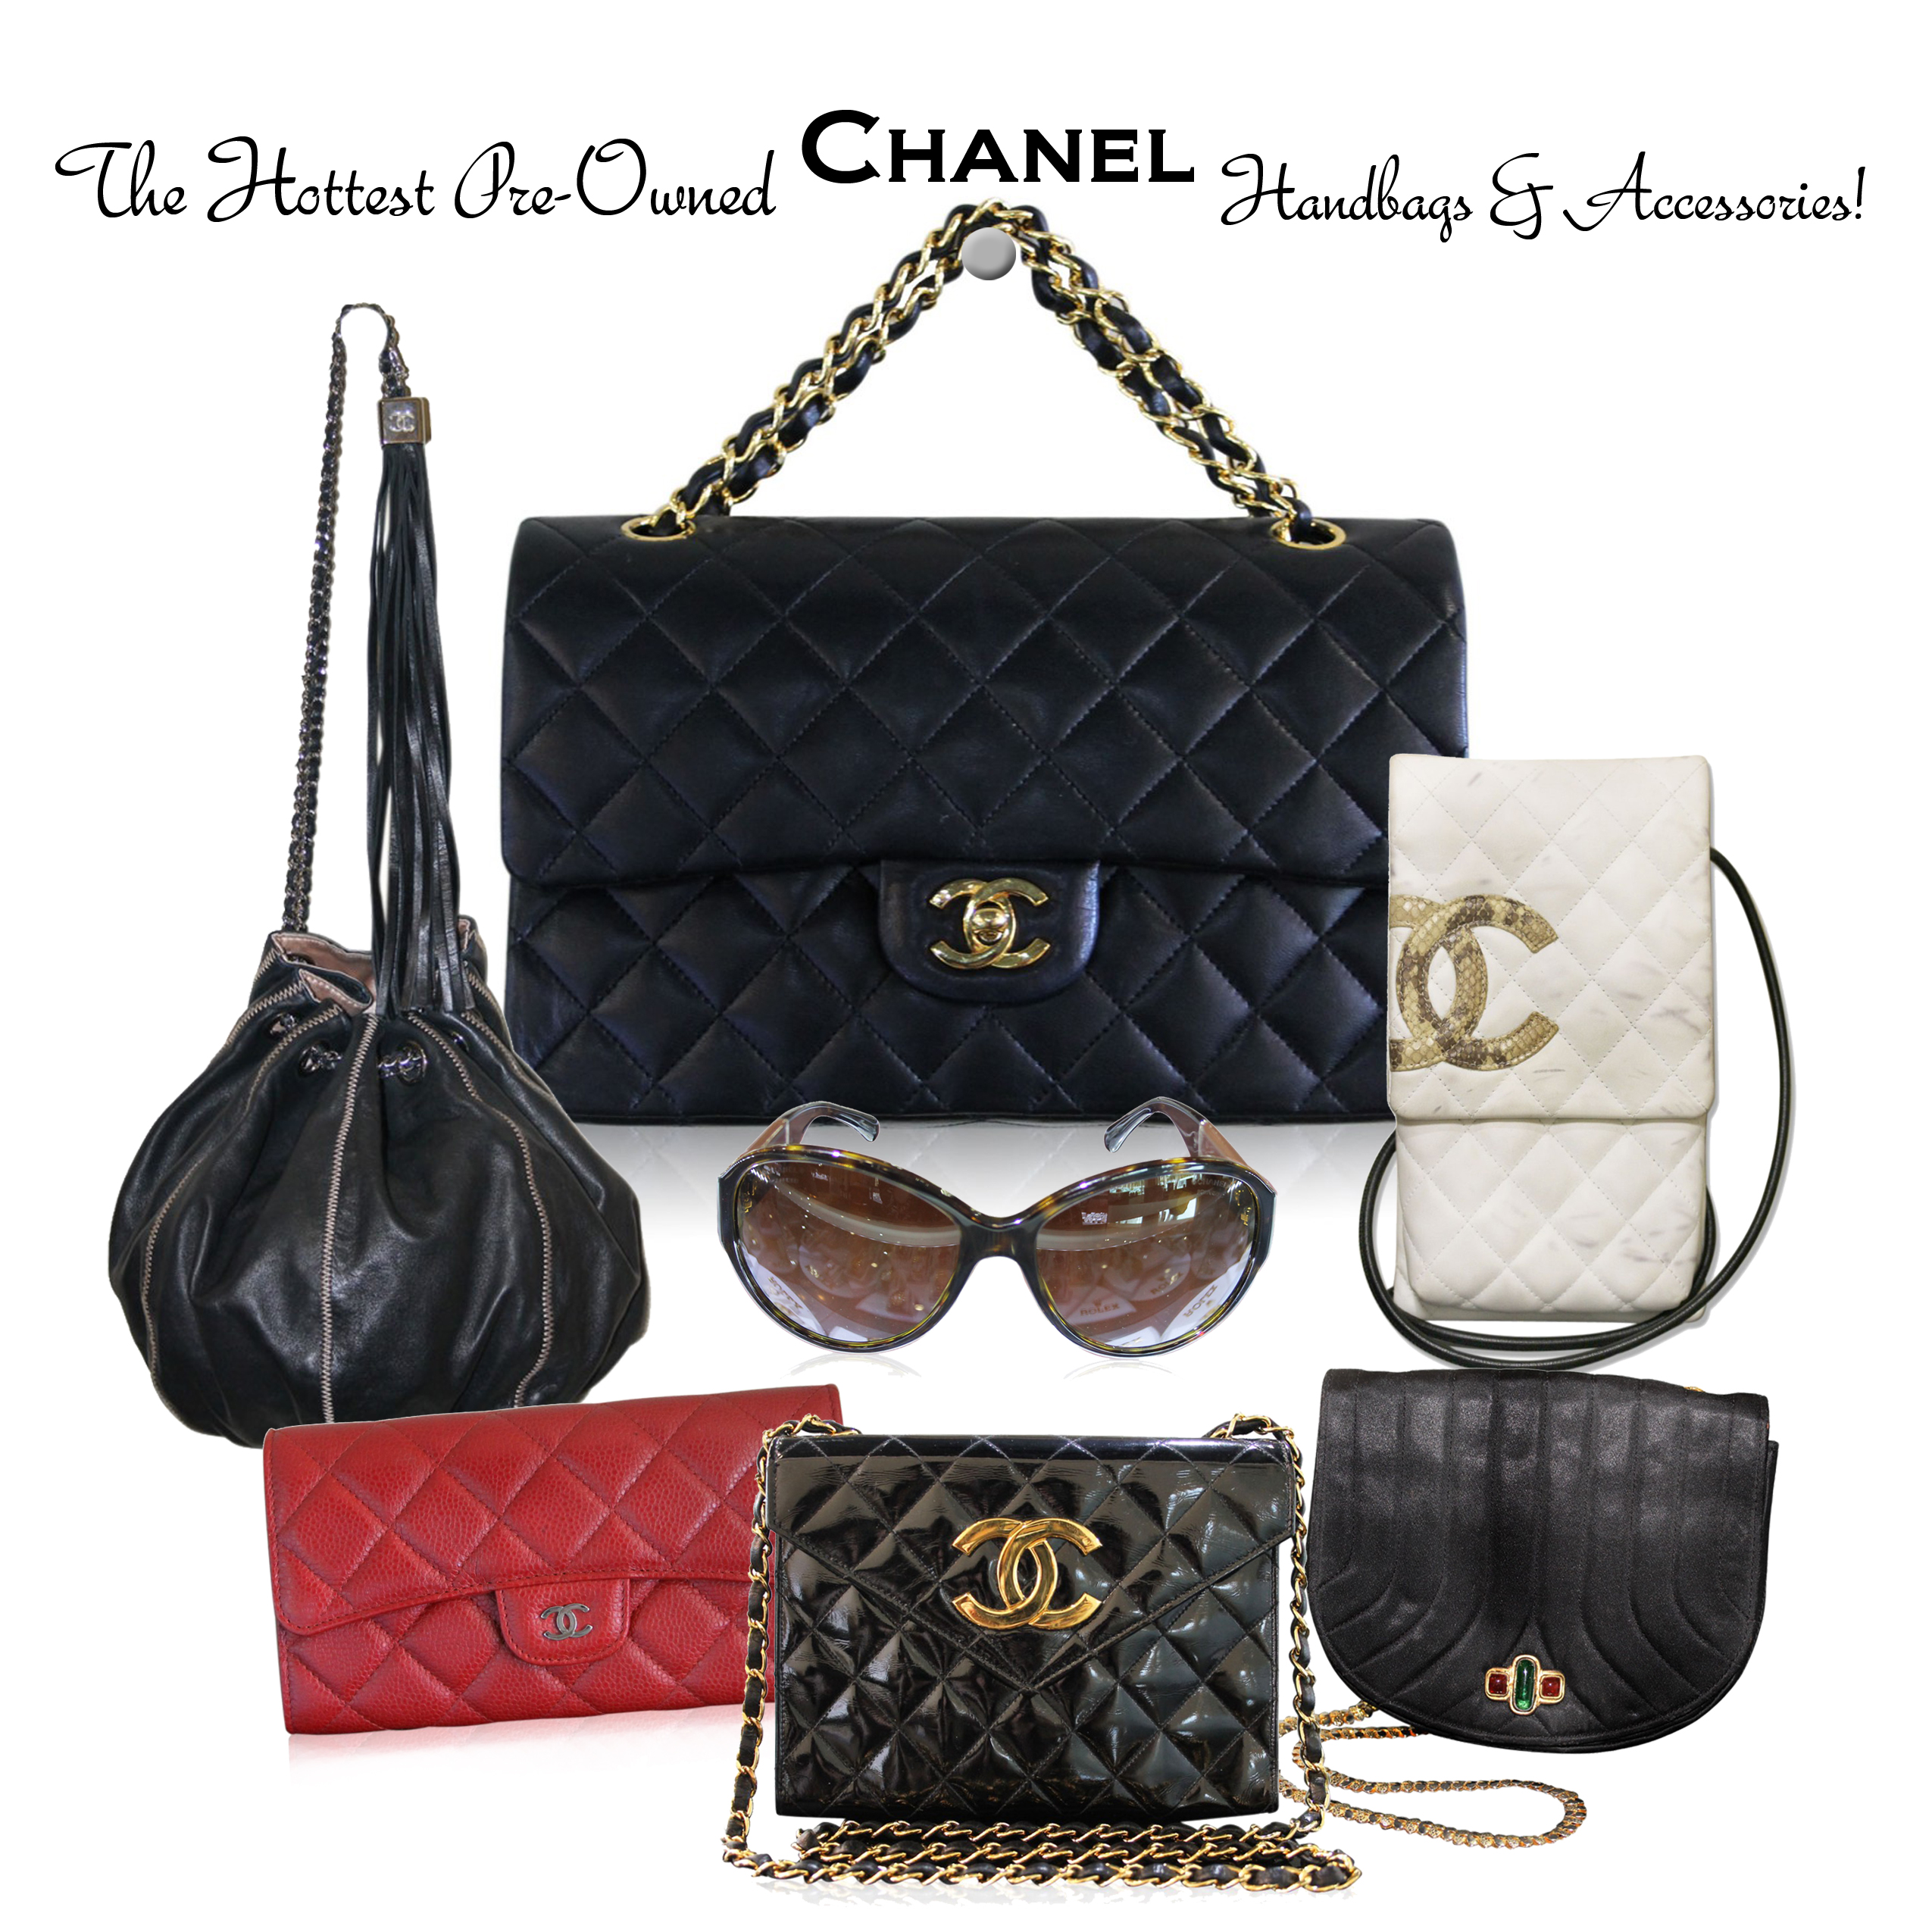 The Hottest Pre Owned Chanel Handbags